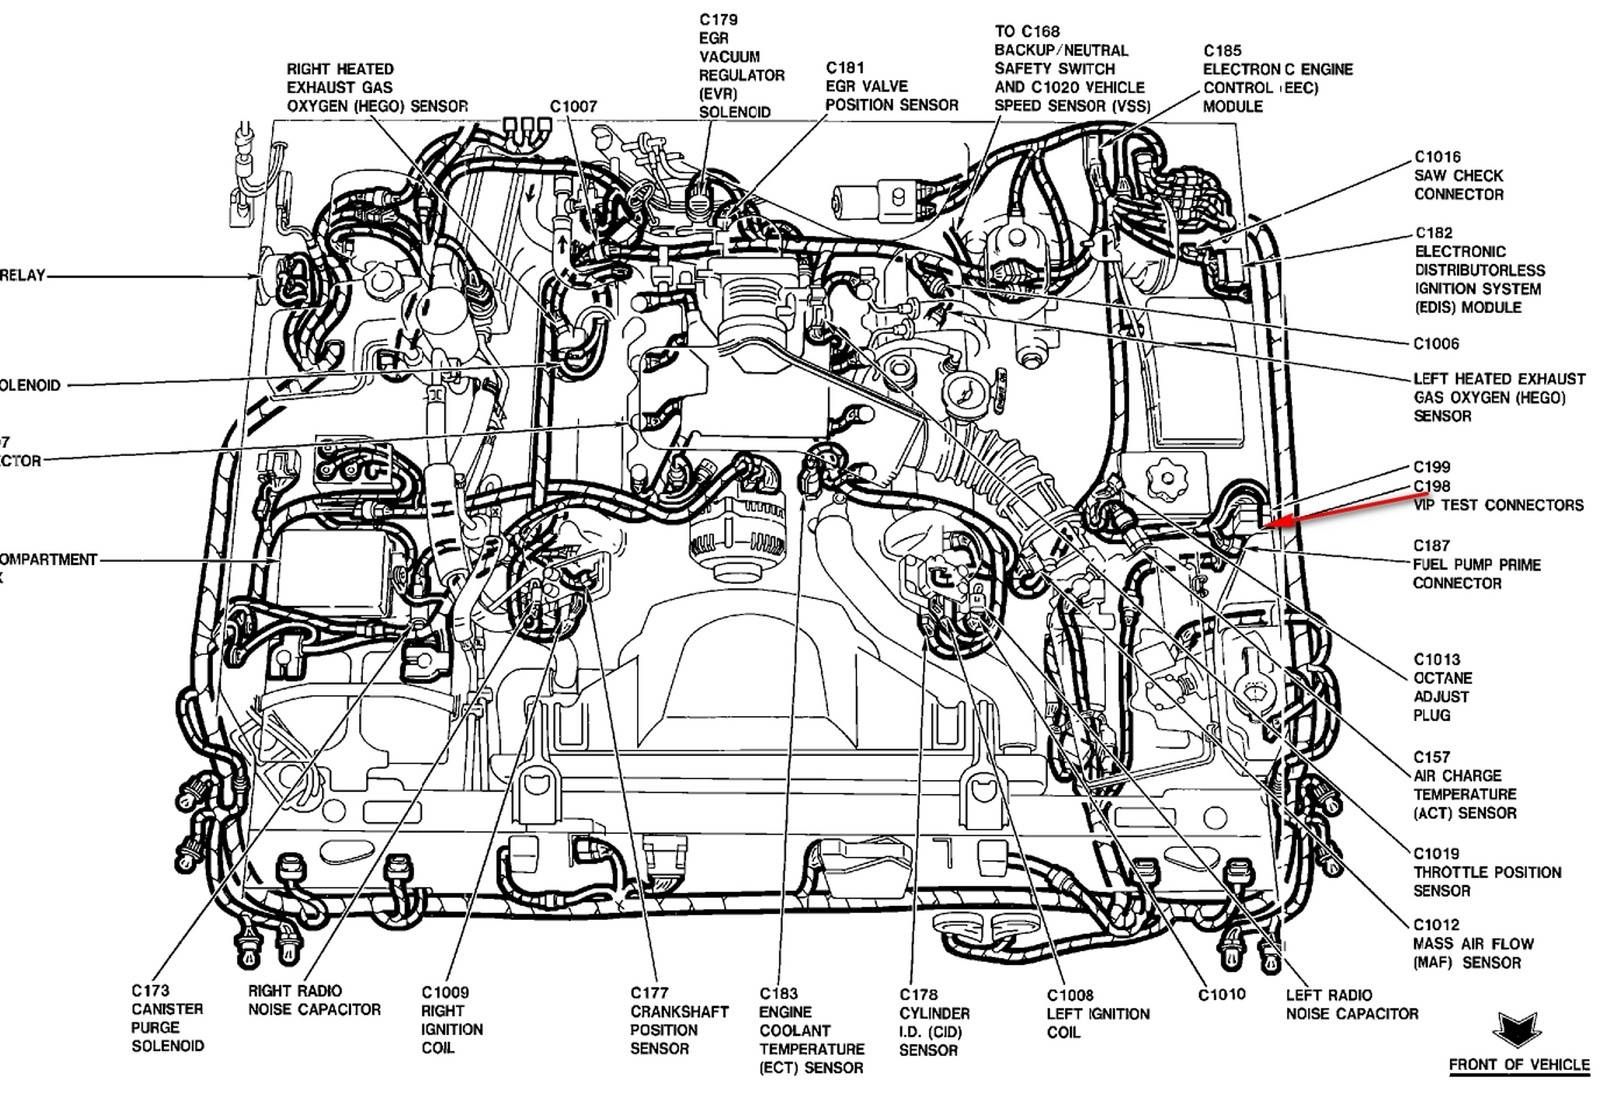 Discussion T29372 ds554767 in addition 3400 Sfi Engine Diagram Vacuum Lines together with Chevy Trailblazer Oil Pressure Switch Location as well Wiring Diagram For 2009 Chevy Malibu besides 2004 Toyota Sienna Coolant Diagram. on 2007 silverado thermostat location